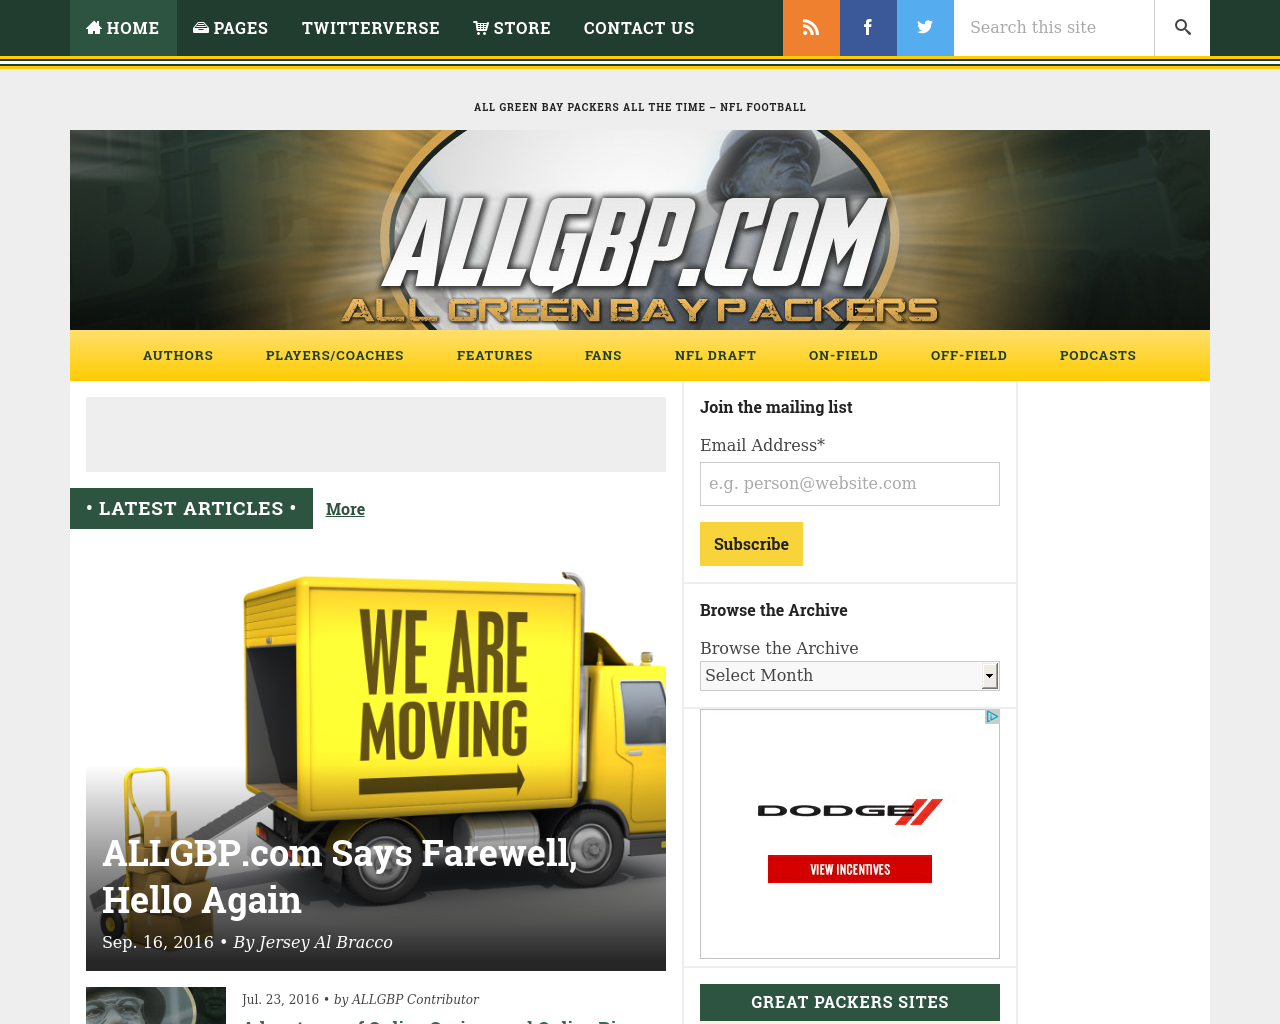 All-Green-Bay-Packers.com-Advertising-Reviews-Pricing